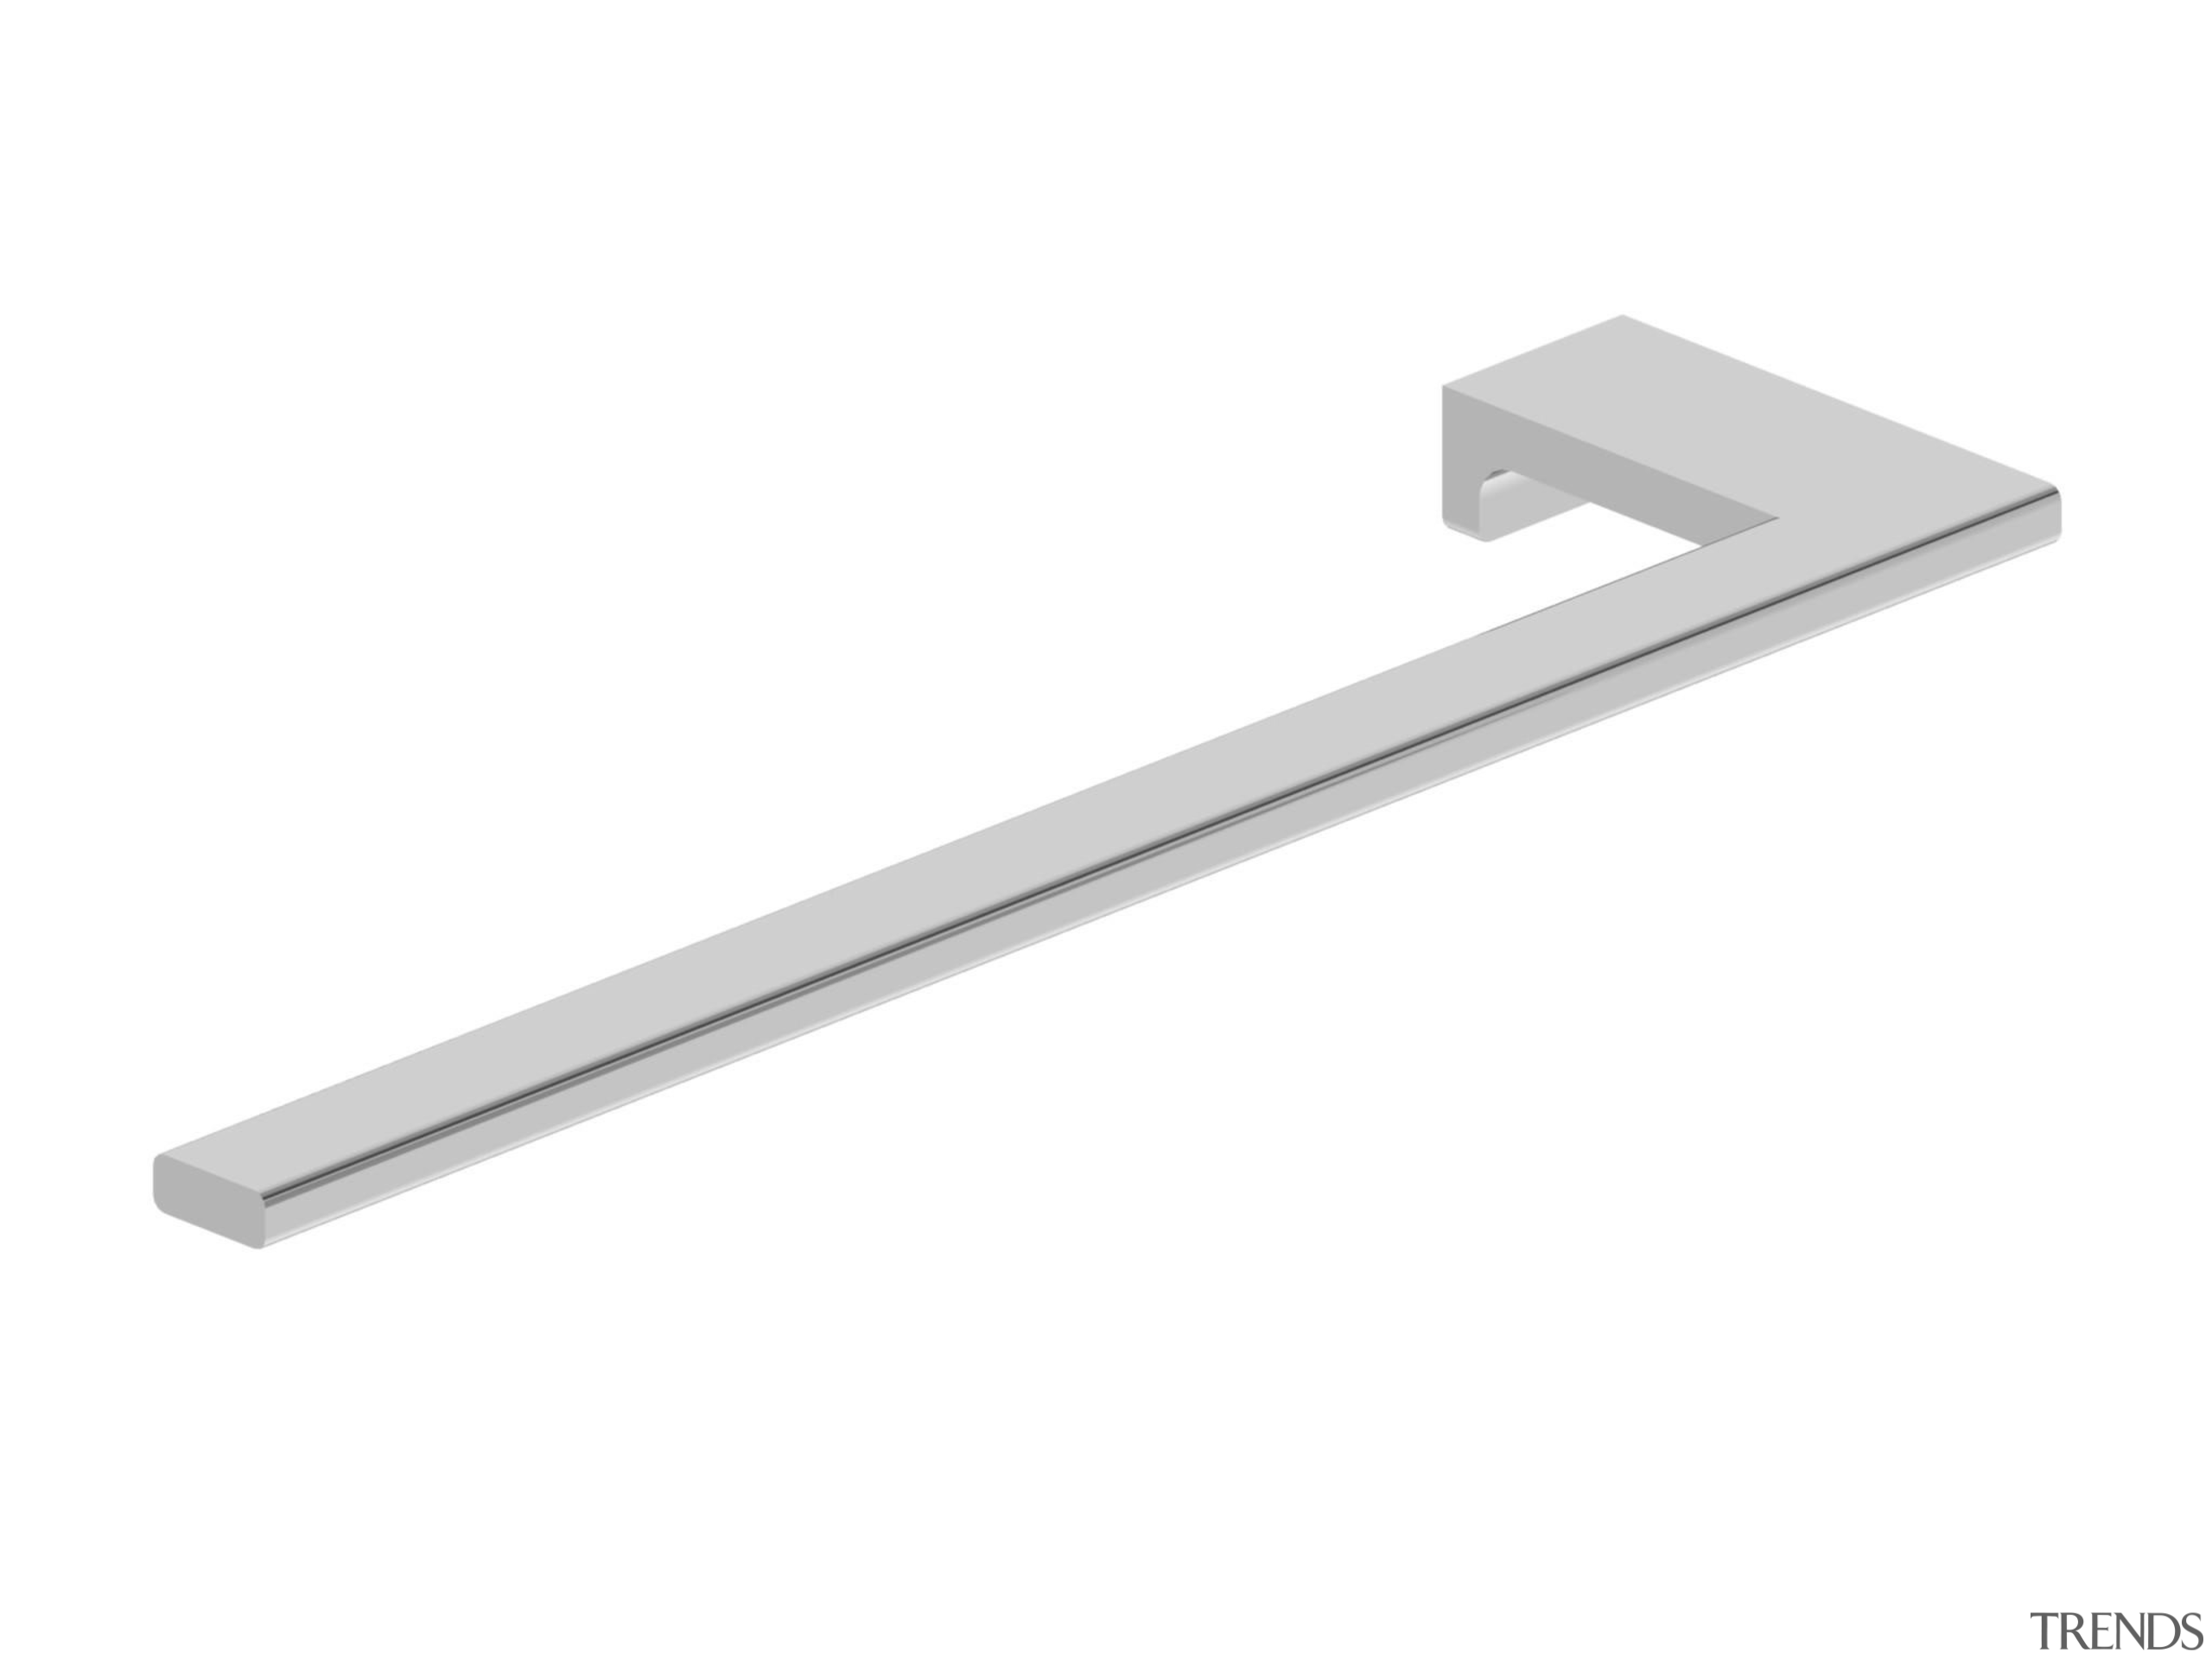 • Manufactured in Australia• Warranty 10 Years• DirectConnect angle, hardware, hardware accessory, line, product design, white